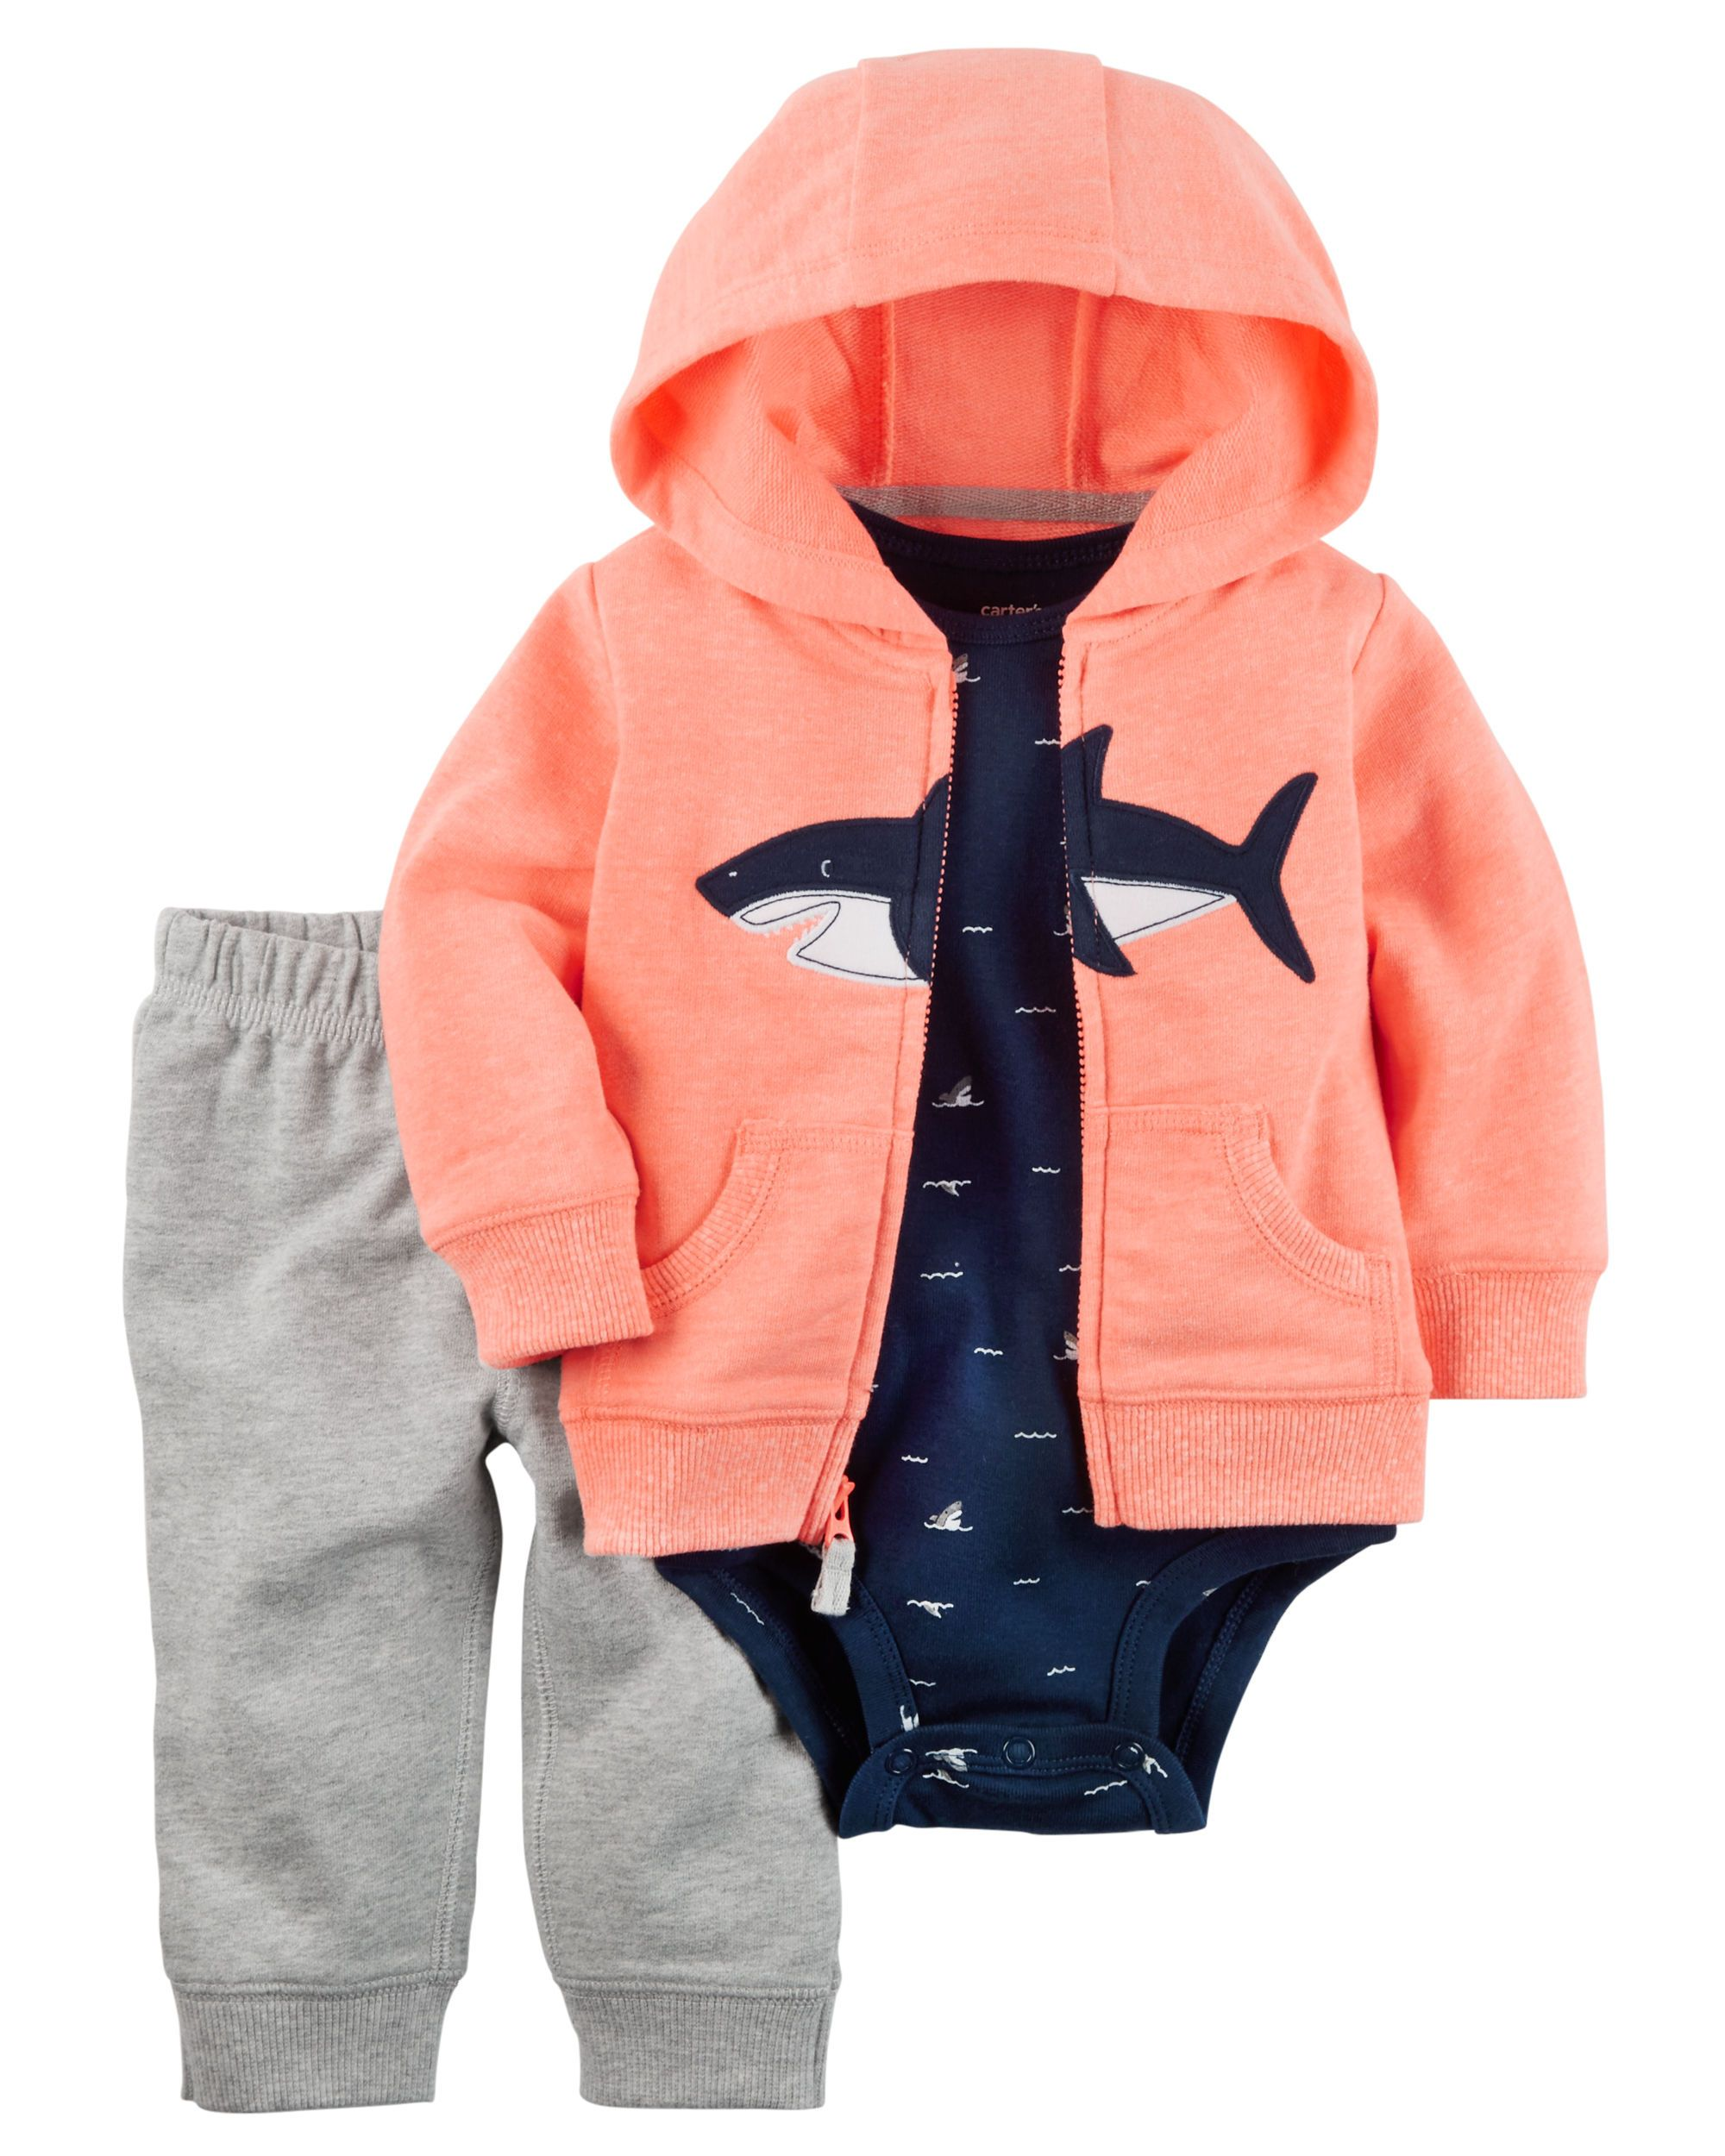 15033f66d Baby Boy 3-Piece Neon Little Jacket Set Designed for all-day play, dressing  is easy with this ready-to-wear matching set. Featuring a zip-up French  terry ...